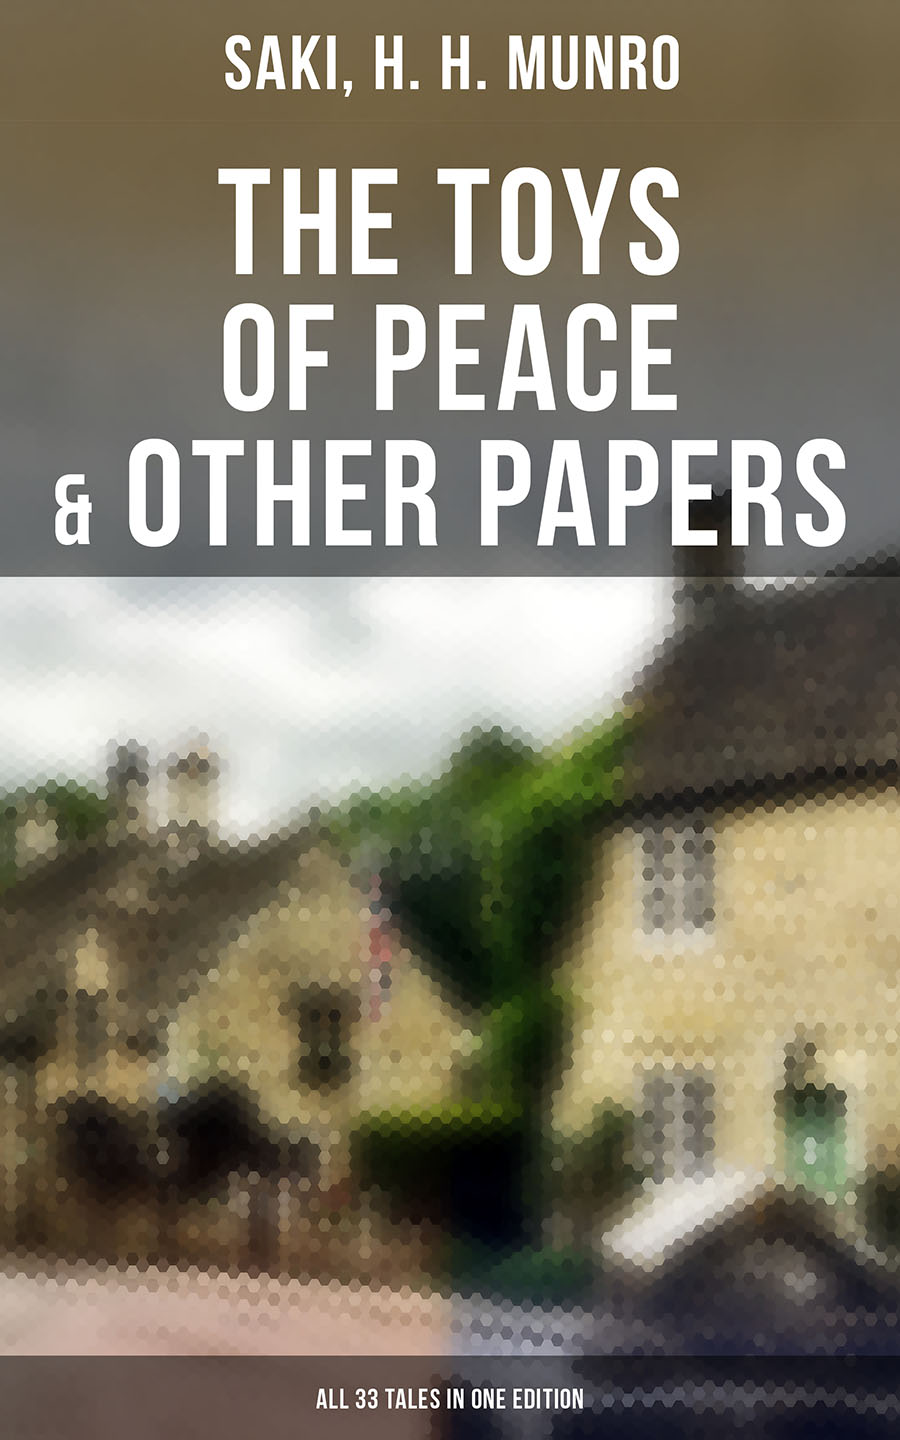 Saki, H. H. Munro The Toys of Peace & Other Papers: All 33 Tales in One Edition h gardner in defence of the imagination